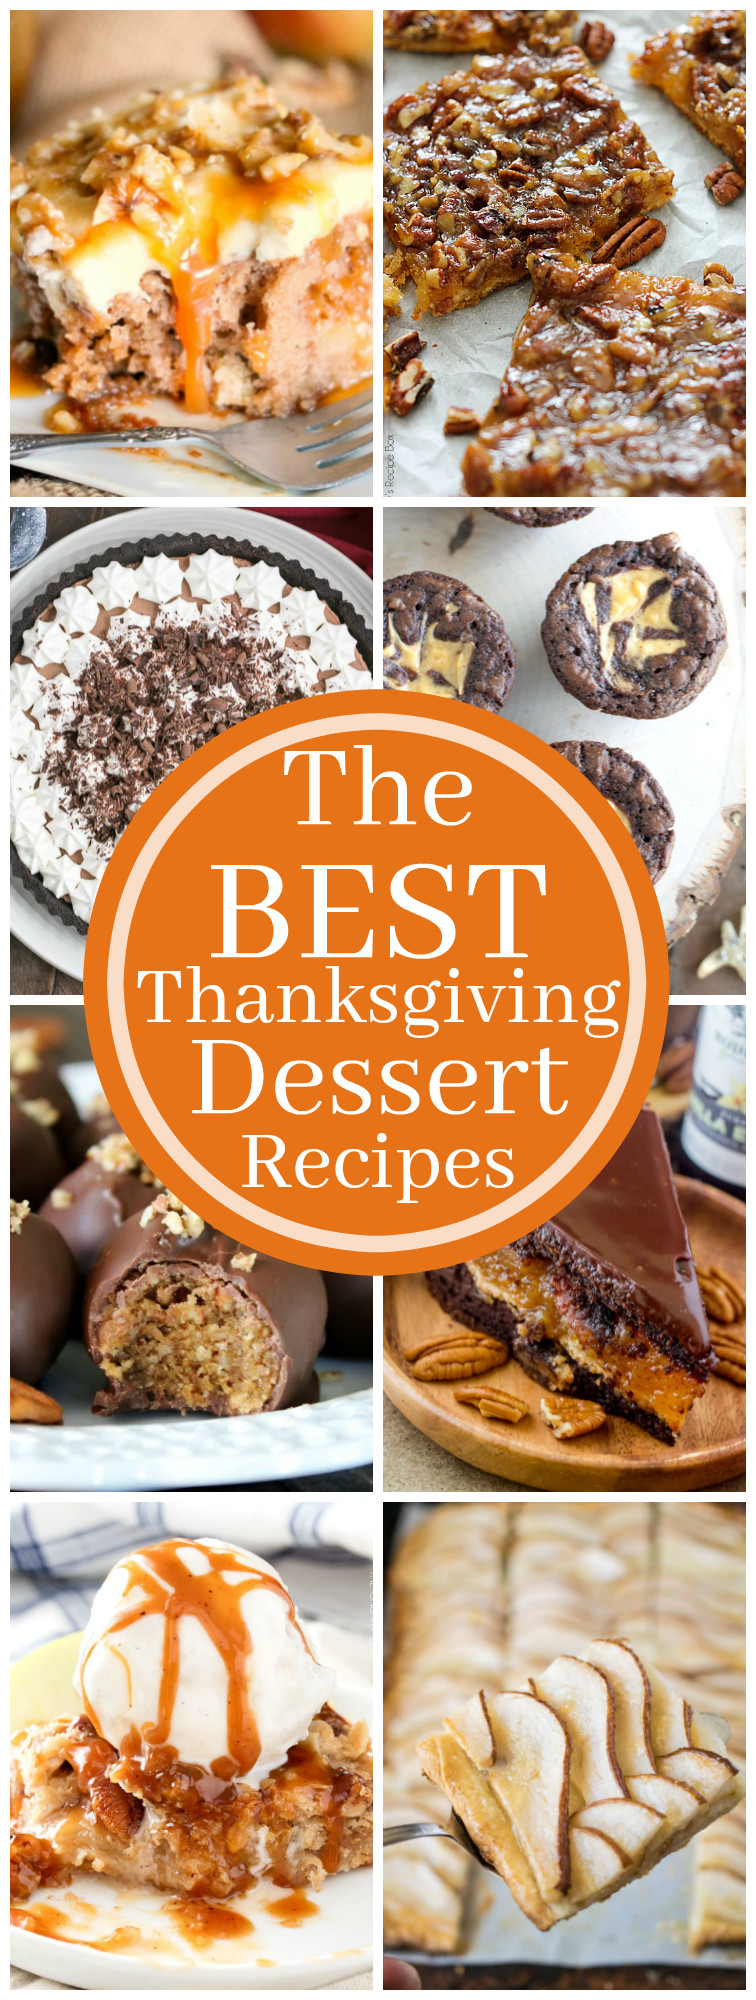 The Kitchen Thanksgiving Recipes  The Best Thanksgiving Dessert Recipes My Kitchen Craze